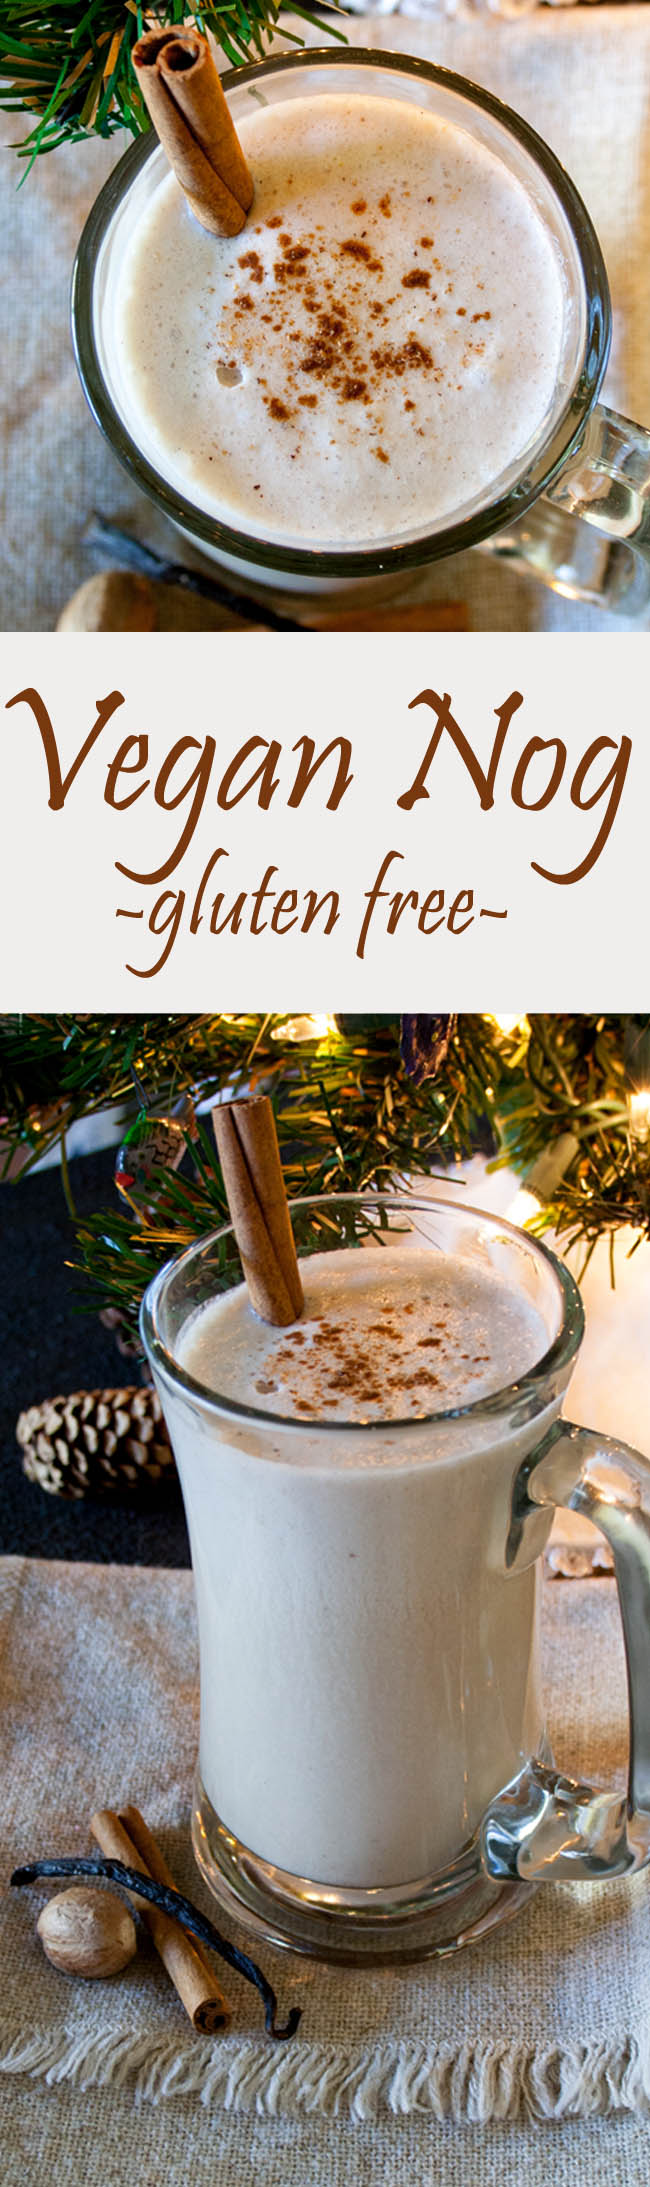 Vegan Nog collage photo with two photos and text in between.